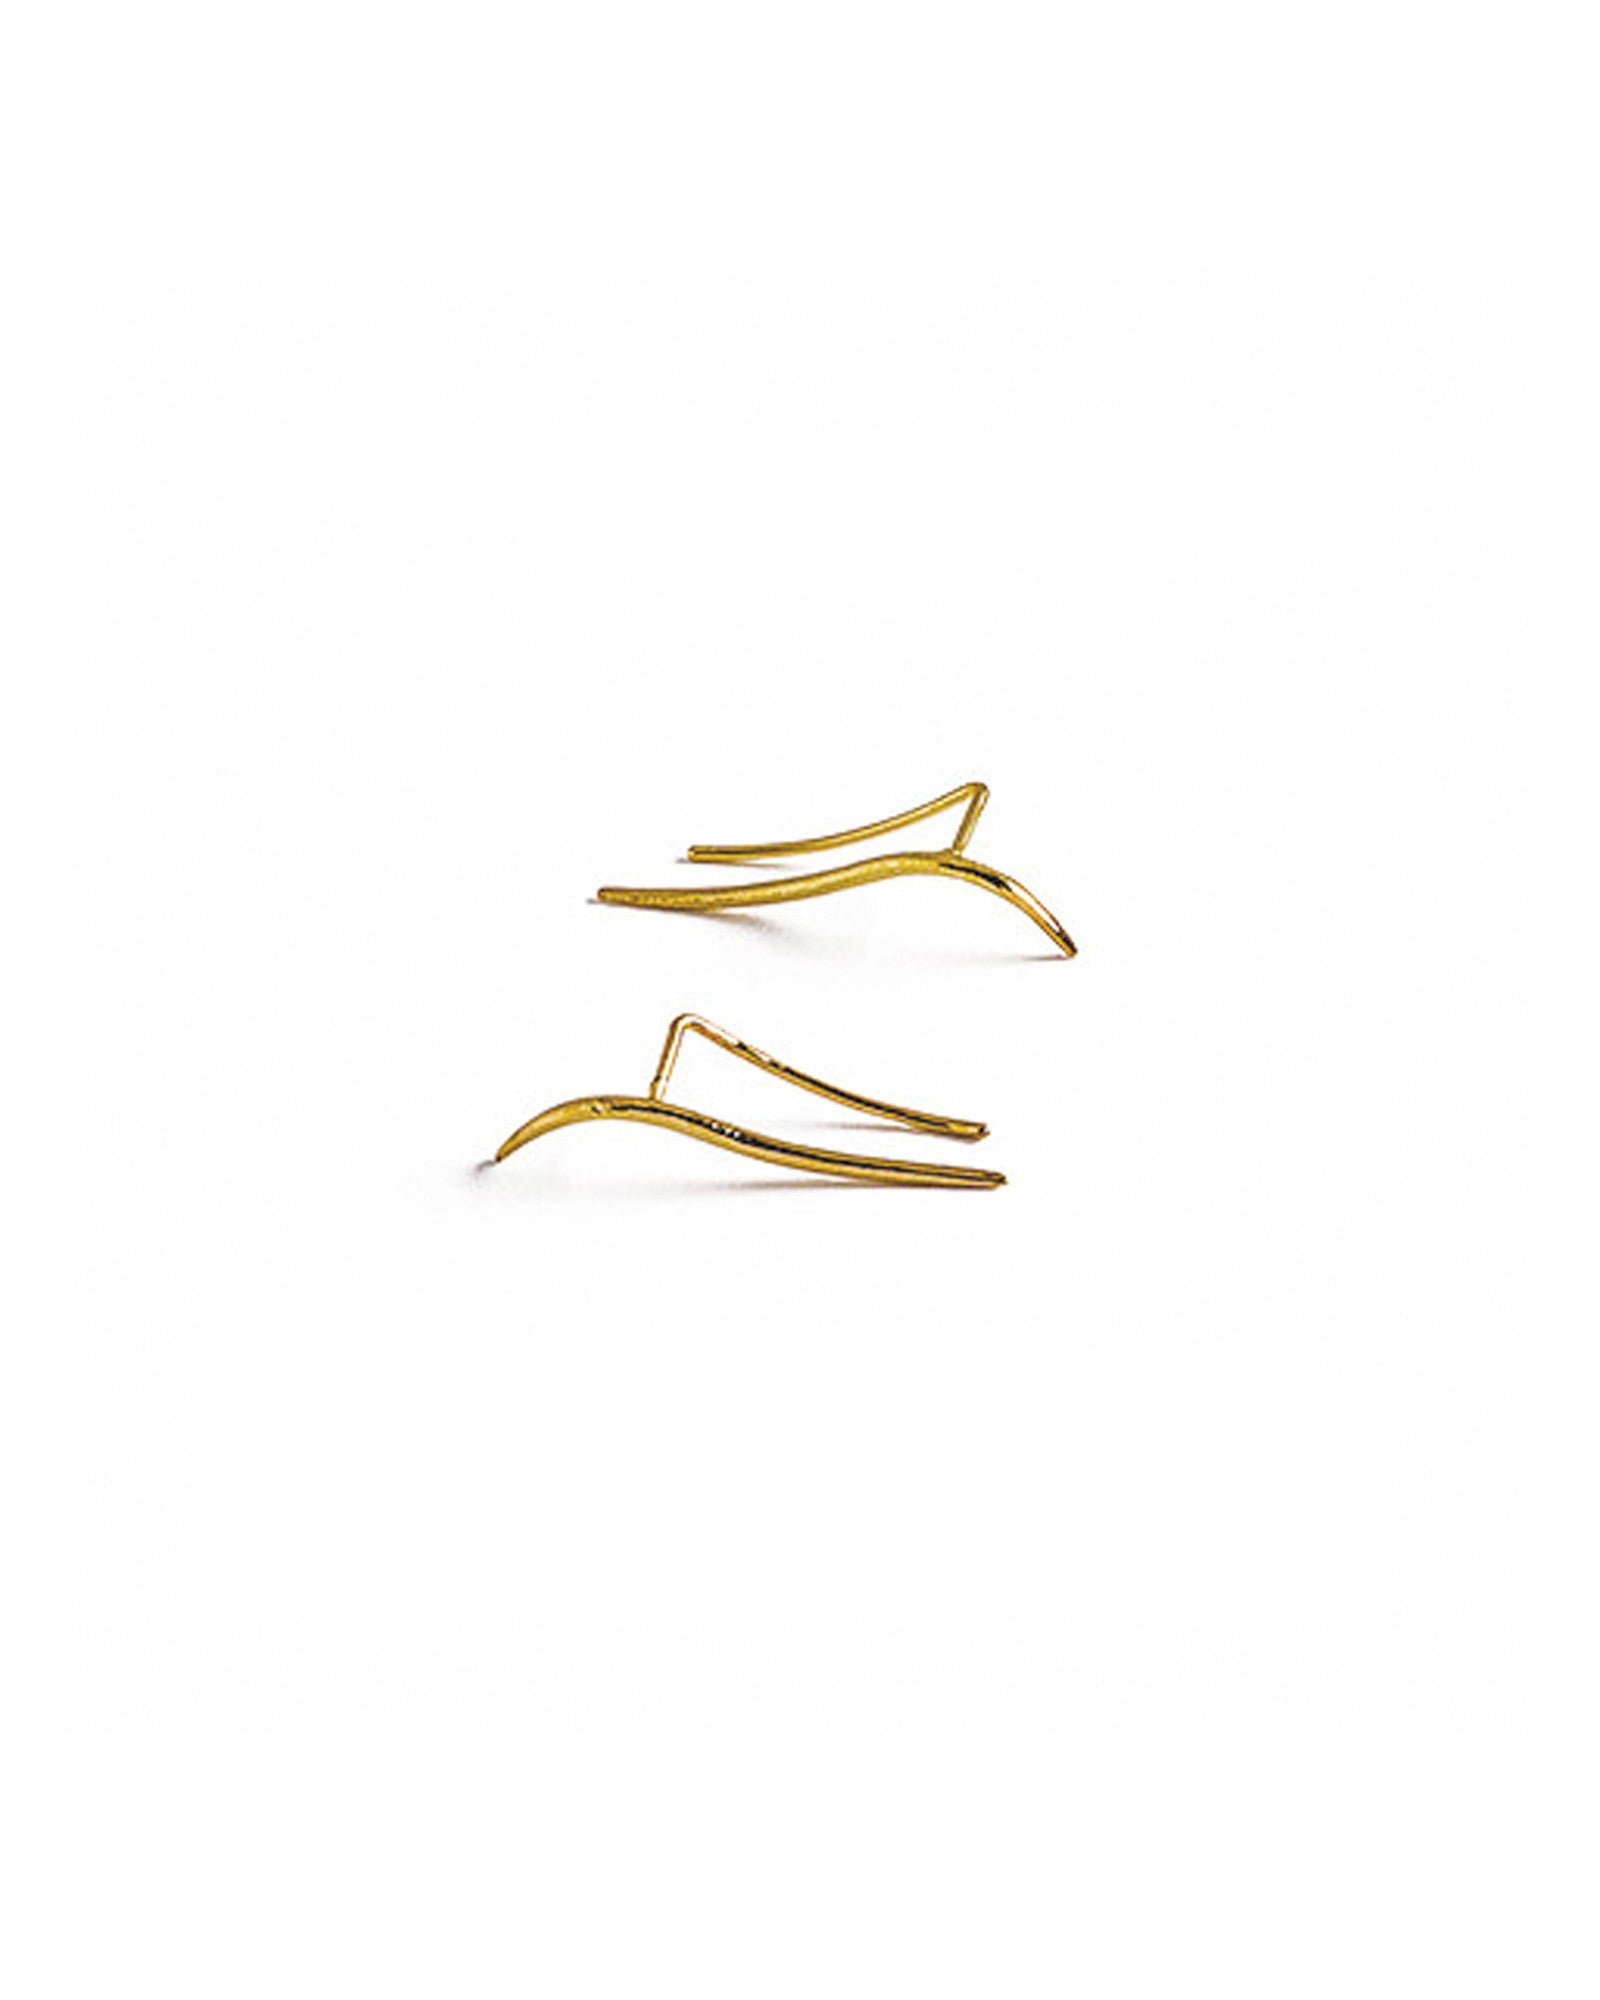 Knobbly Studio Calligraphic Ear Pin Yellow Gold